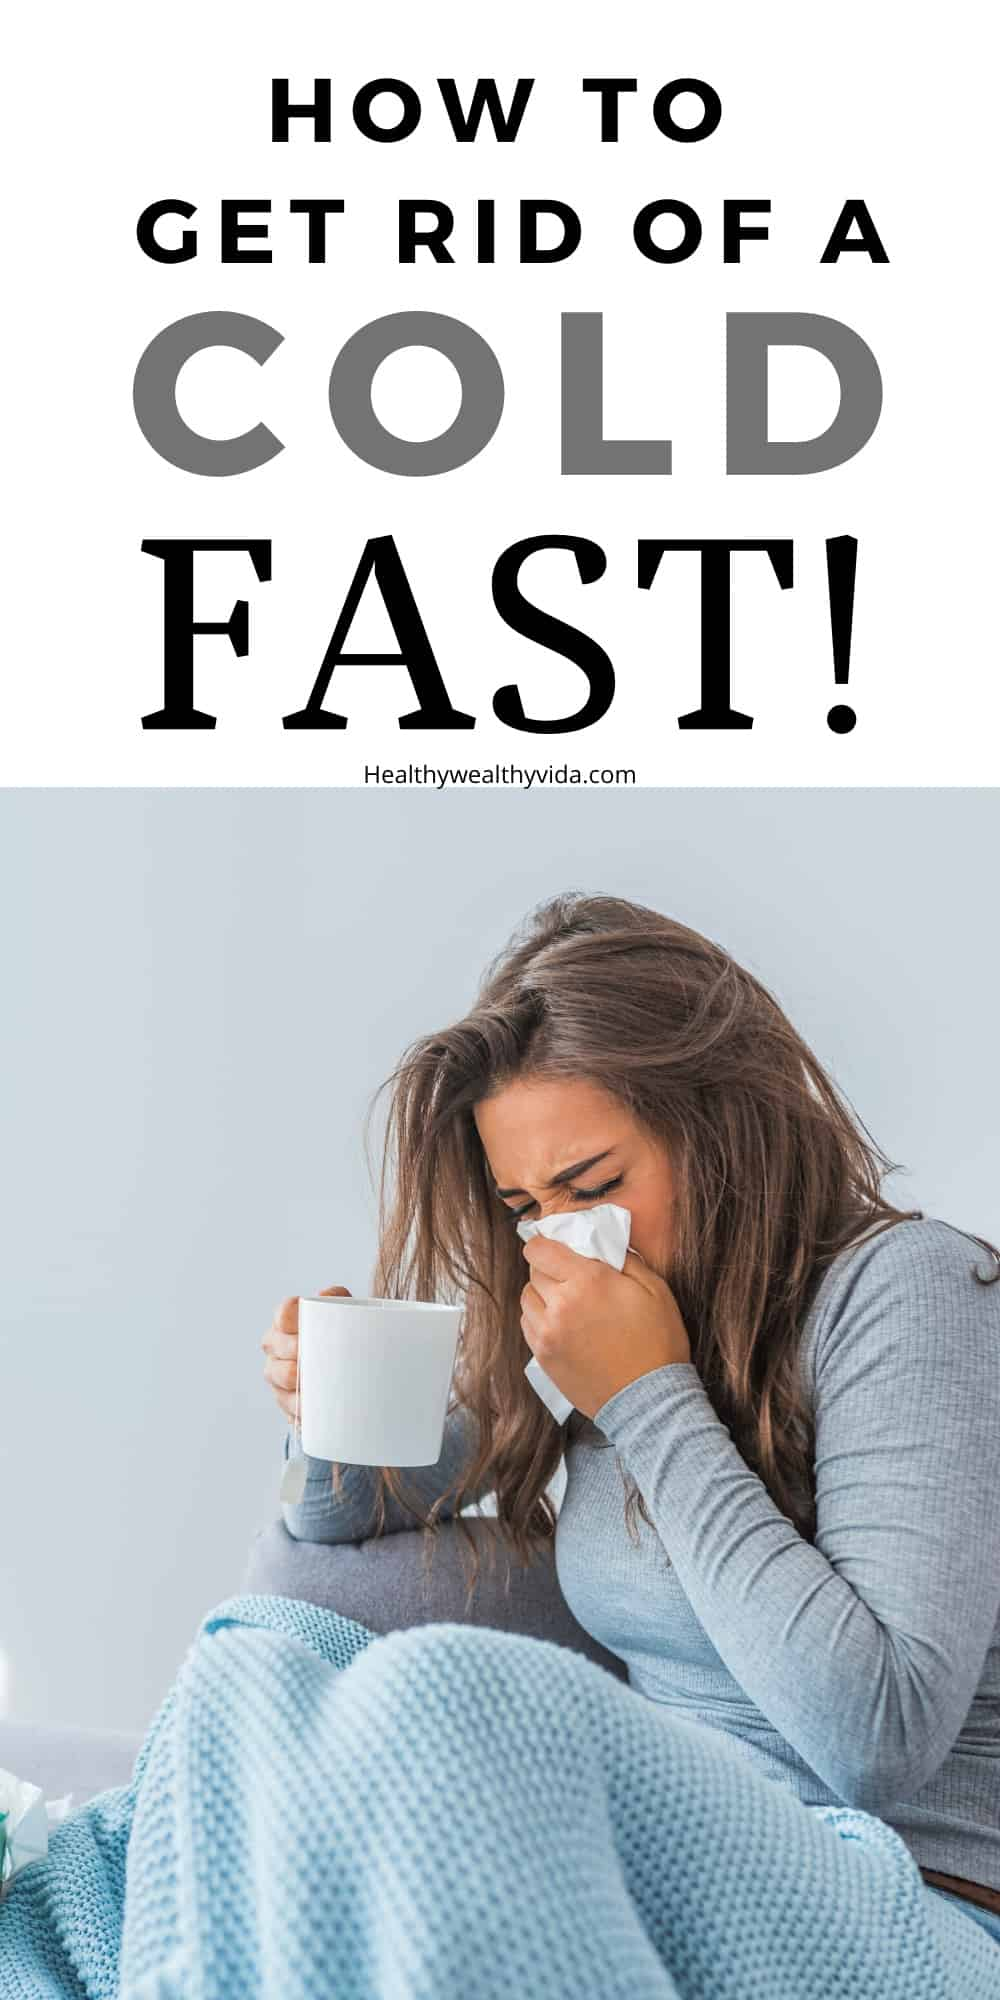 How to get rid of a cold fast and naturally